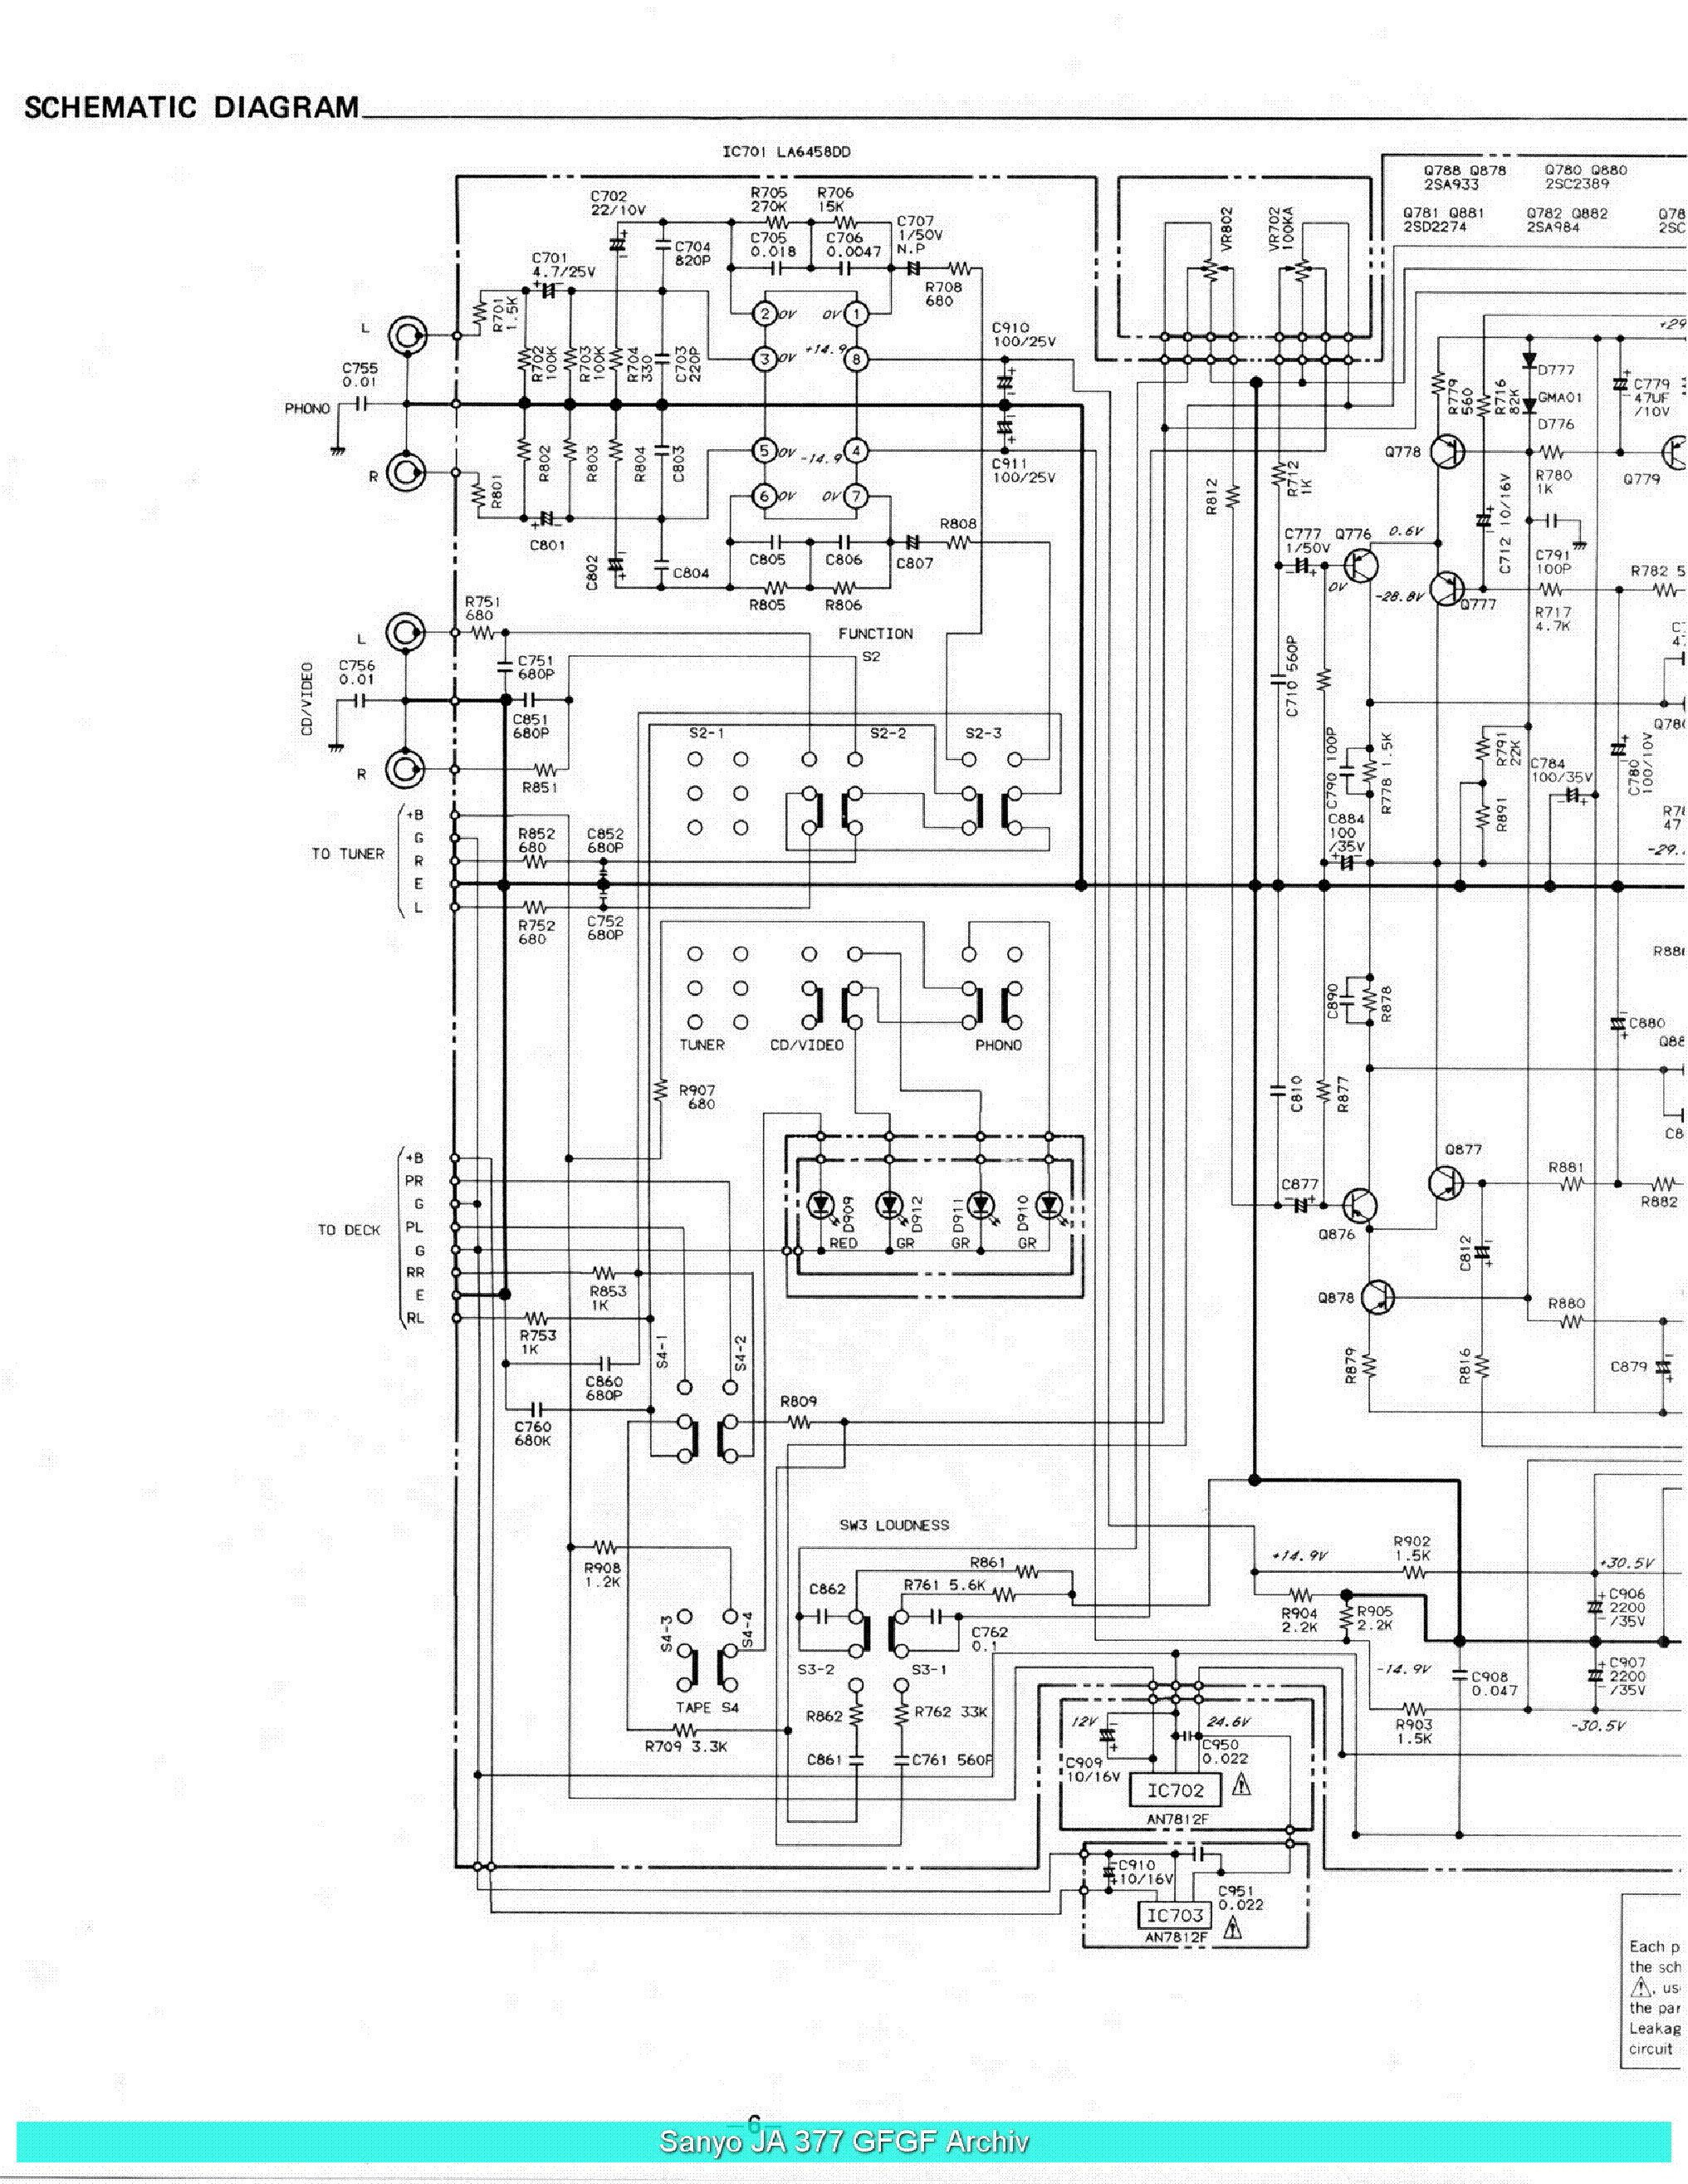 SANYO JA377 SCH Service Manual download, schematics